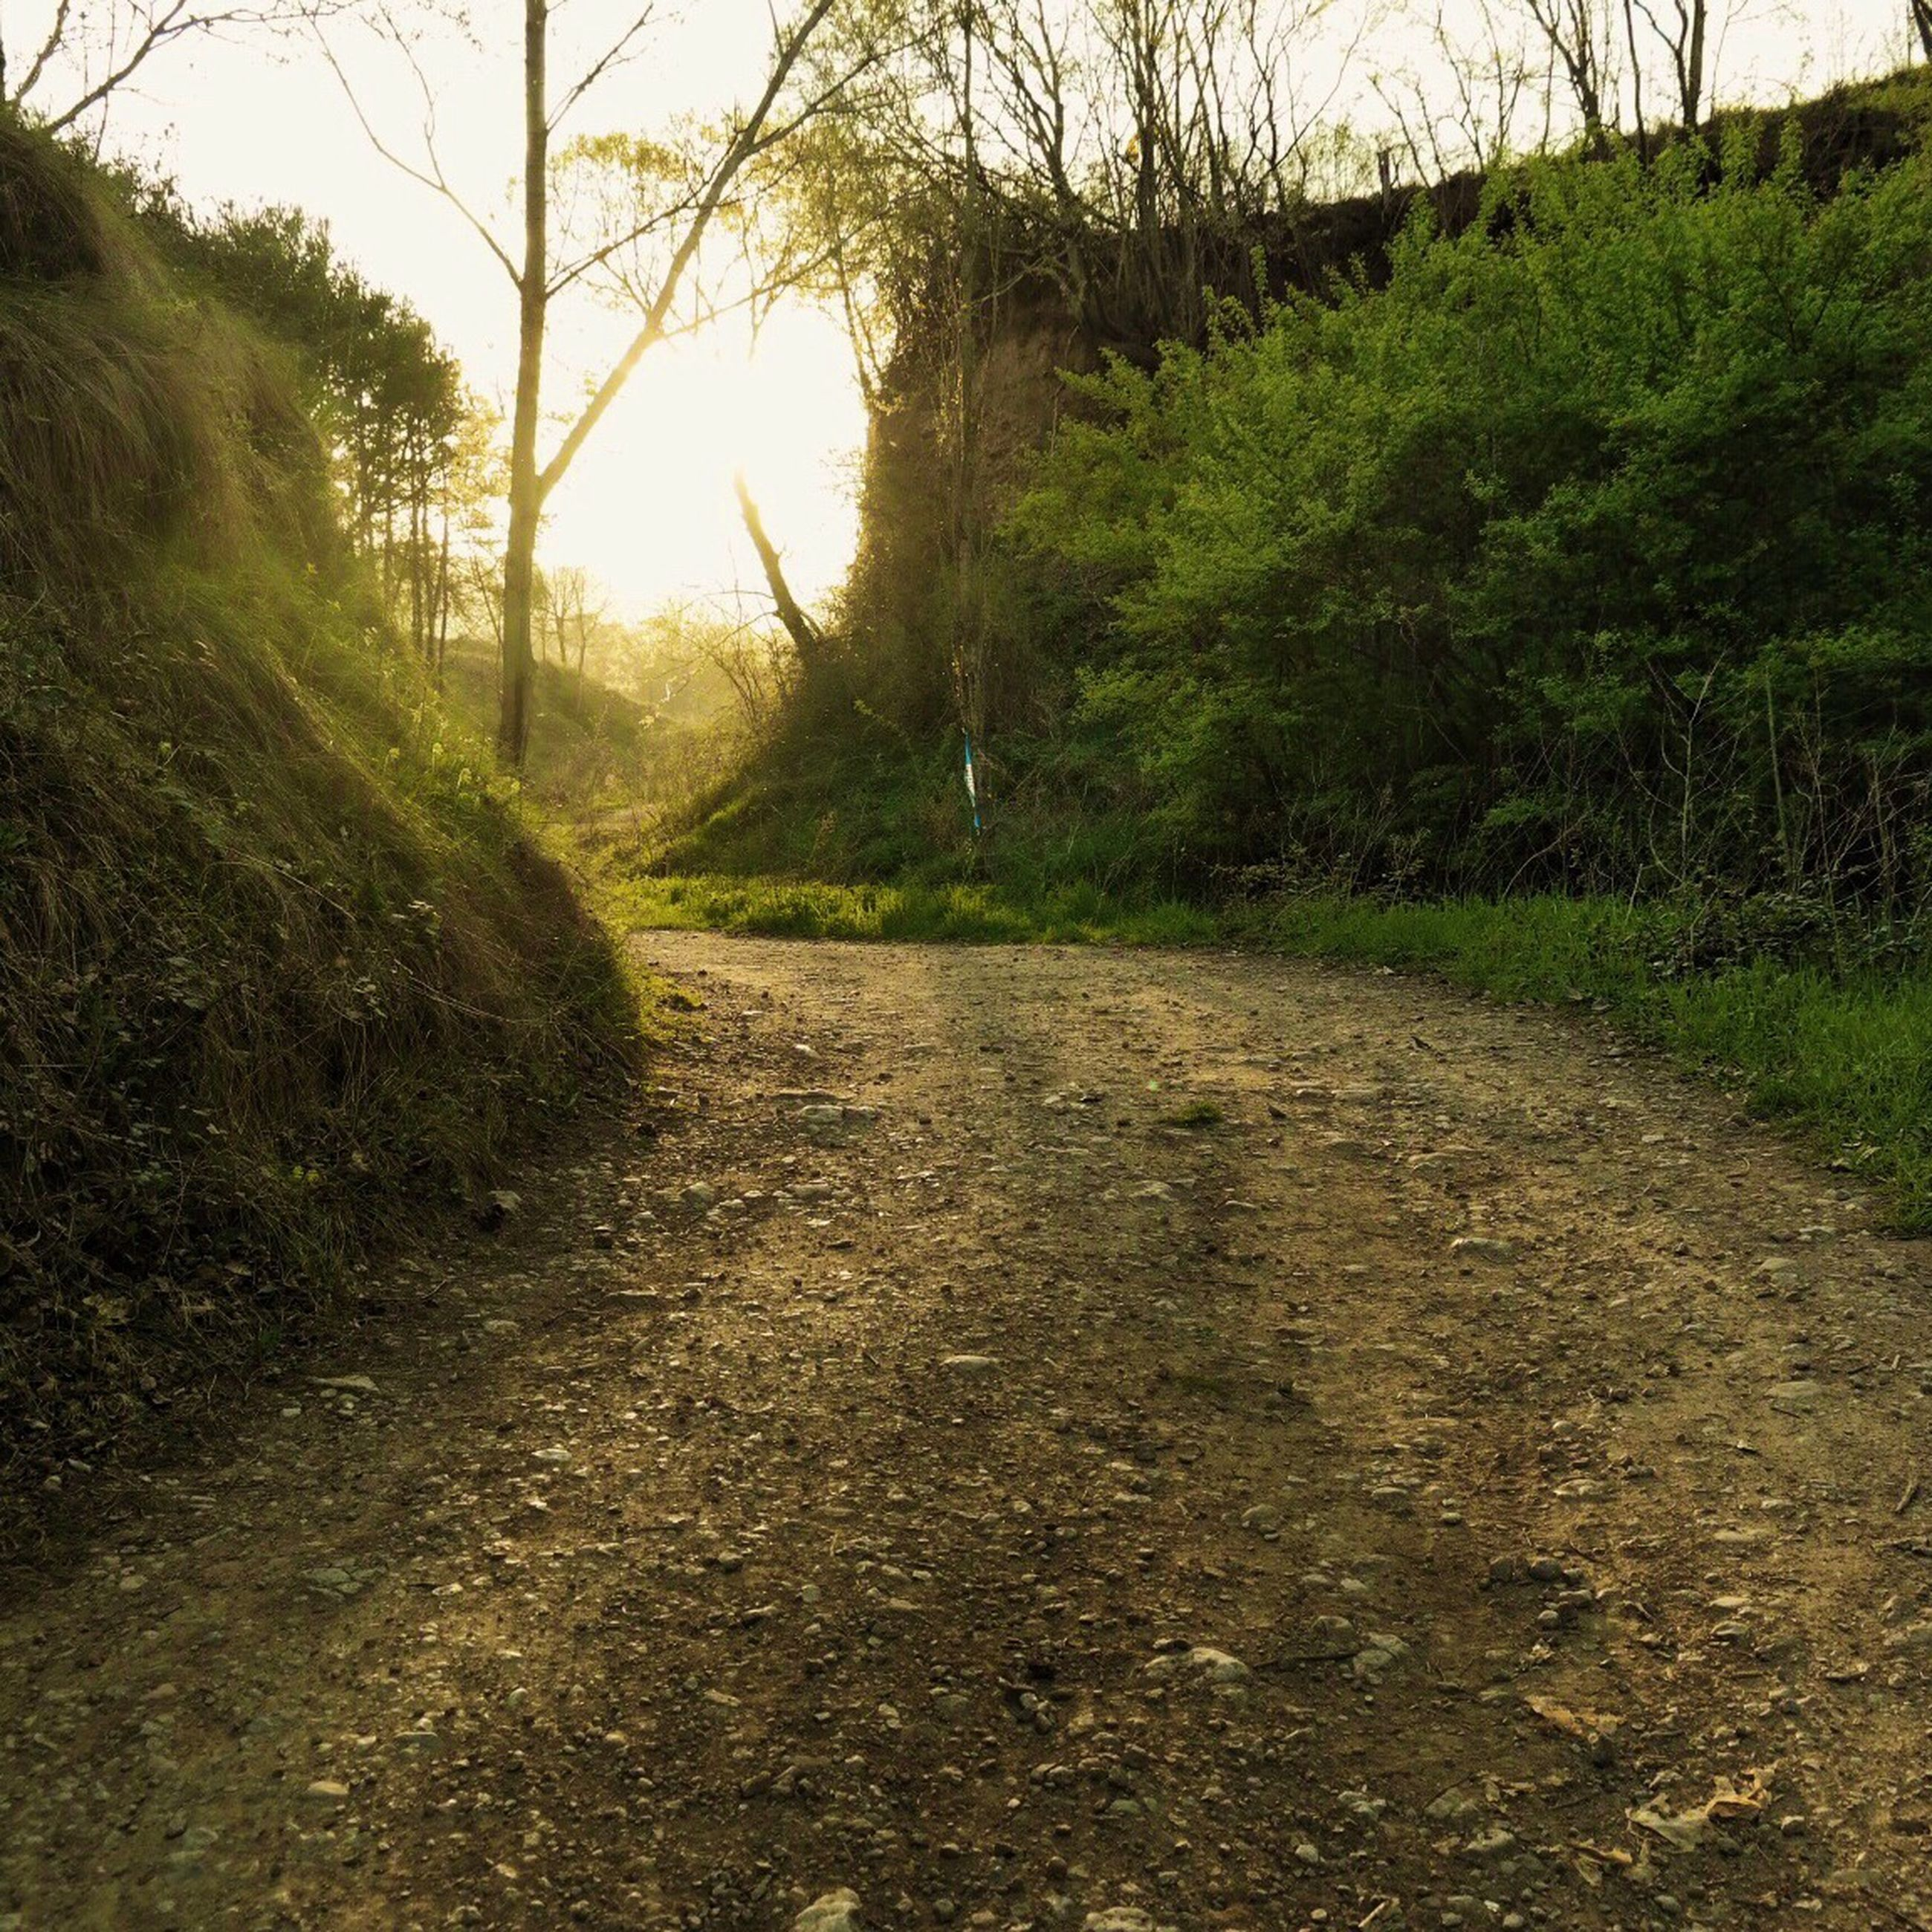 the way forward, tree, tranquility, diminishing perspective, tranquil scene, growth, nature, vanishing point, grass, dirt road, sunlight, footpath, road, plant, landscape, no people, sky, scenics, outdoors, clear sky